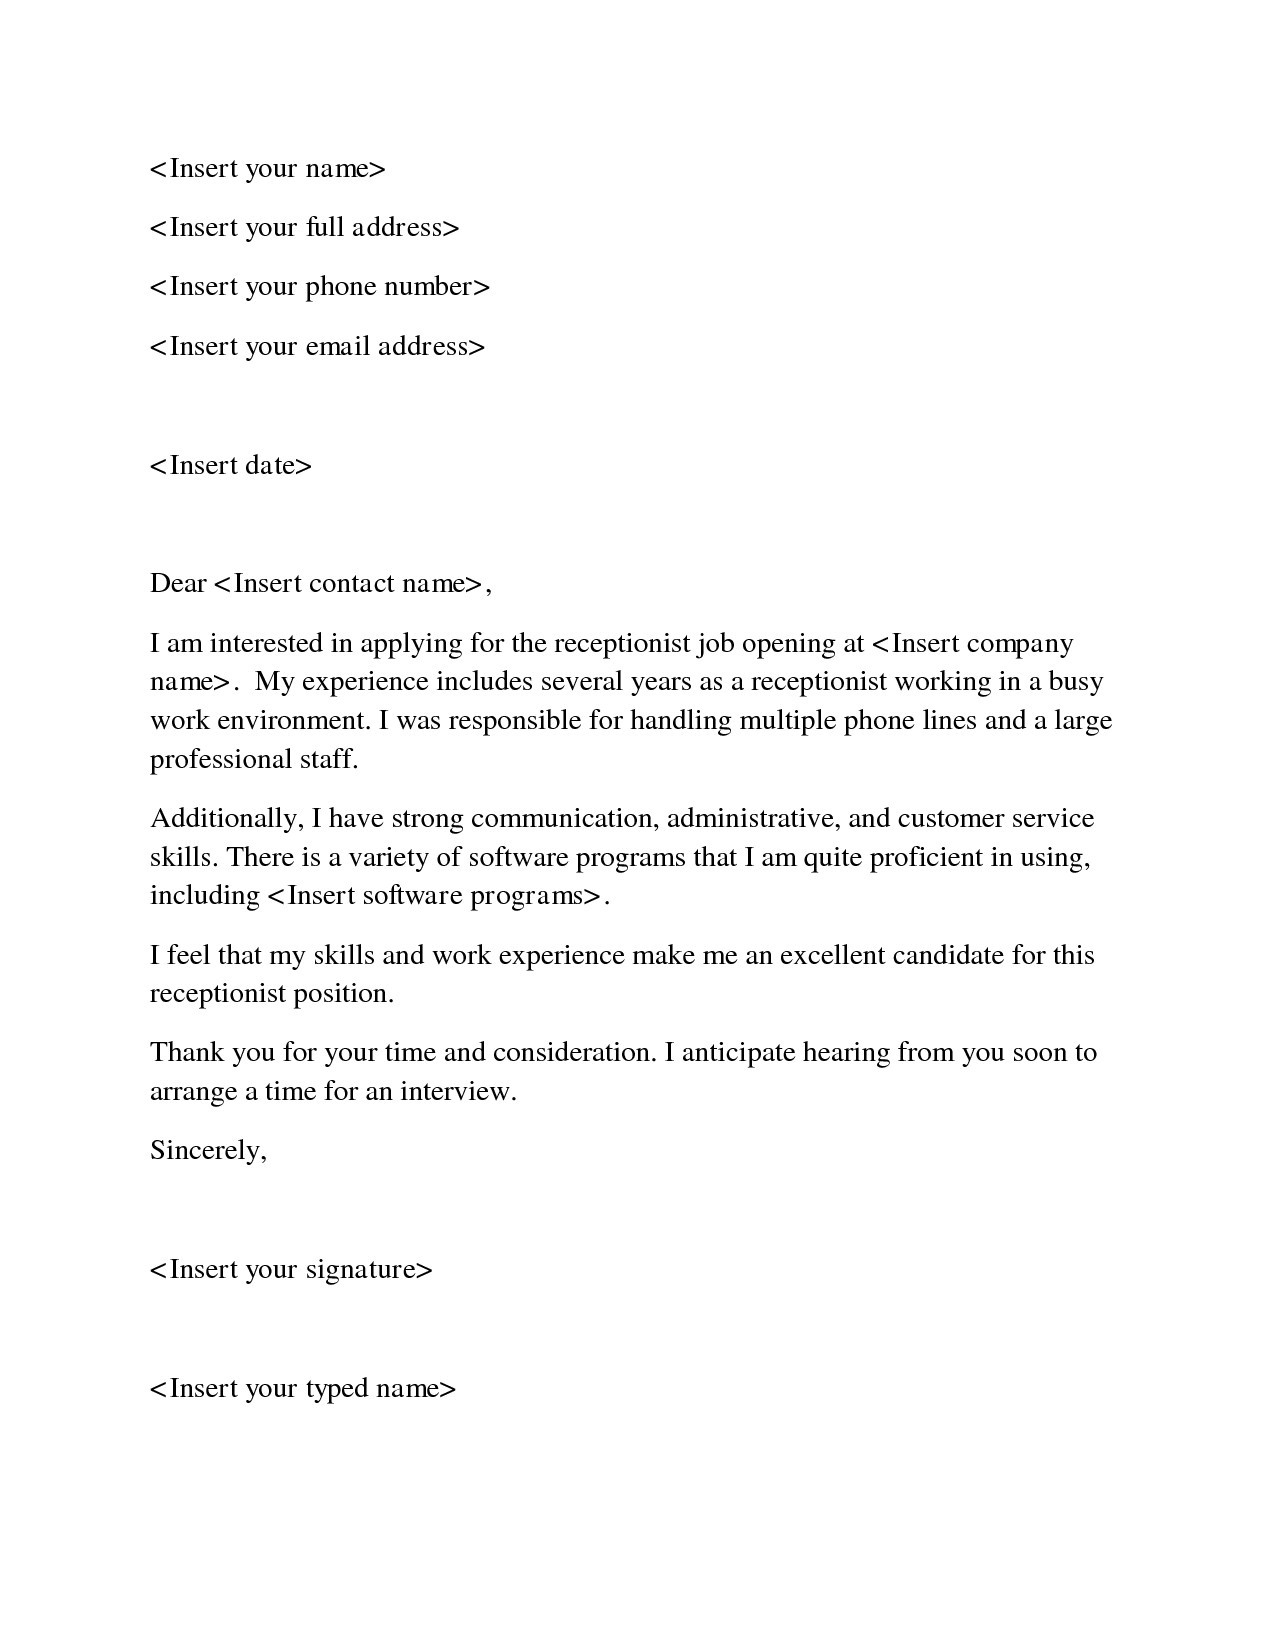 Cover Letter Template for Administrative assistant Job - Examples Cover Letters for Administrative Positions Elegant New